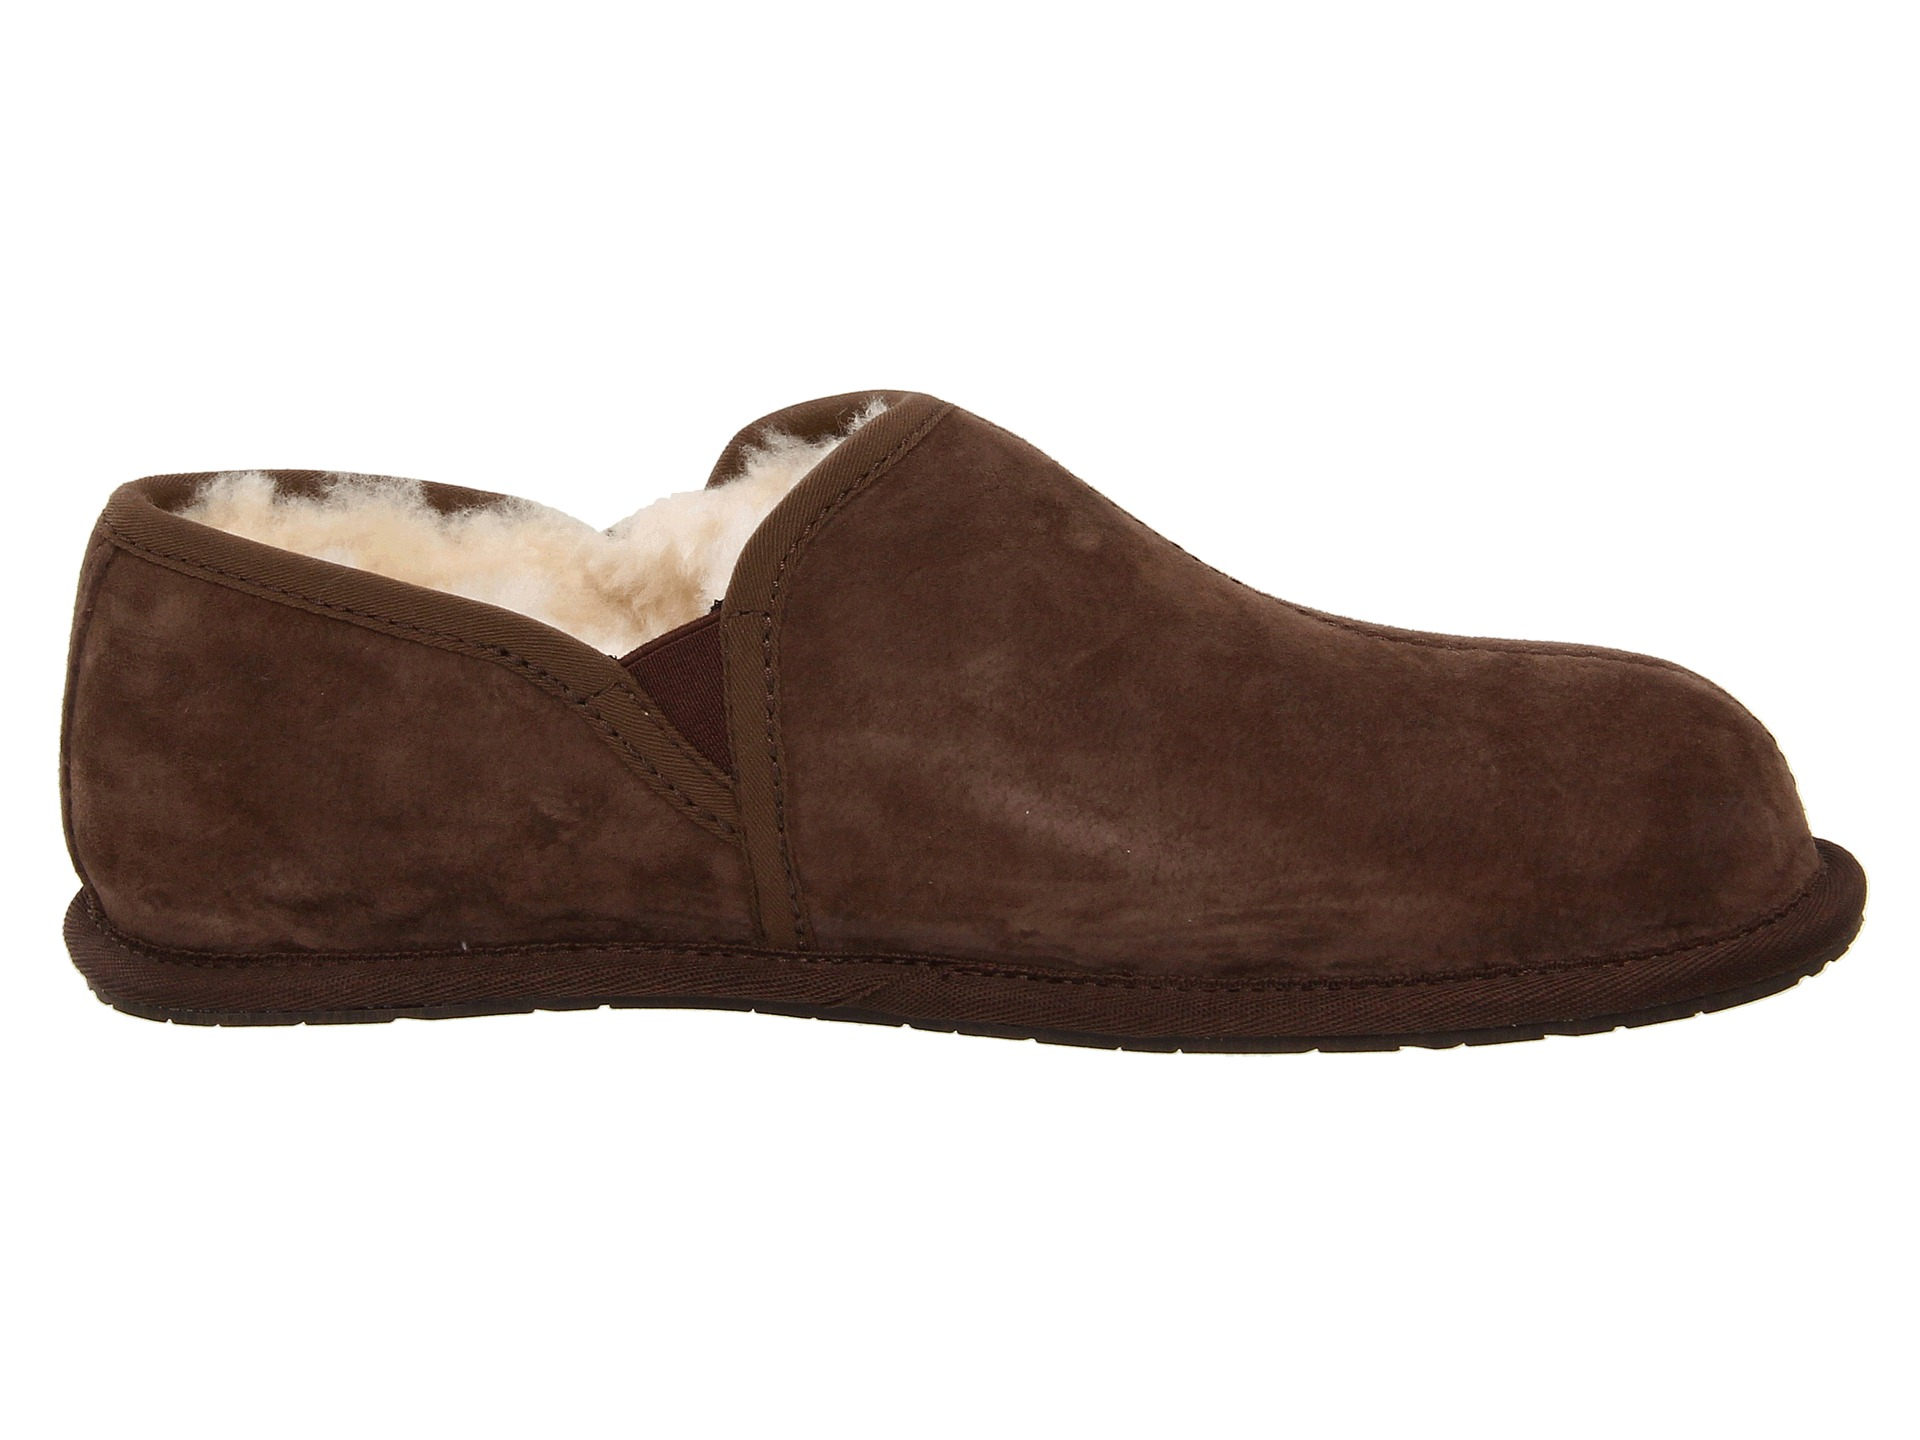 d06bb5b370c Ugg Scuff Romeo Slippers - cheap watches mgc-gas.com